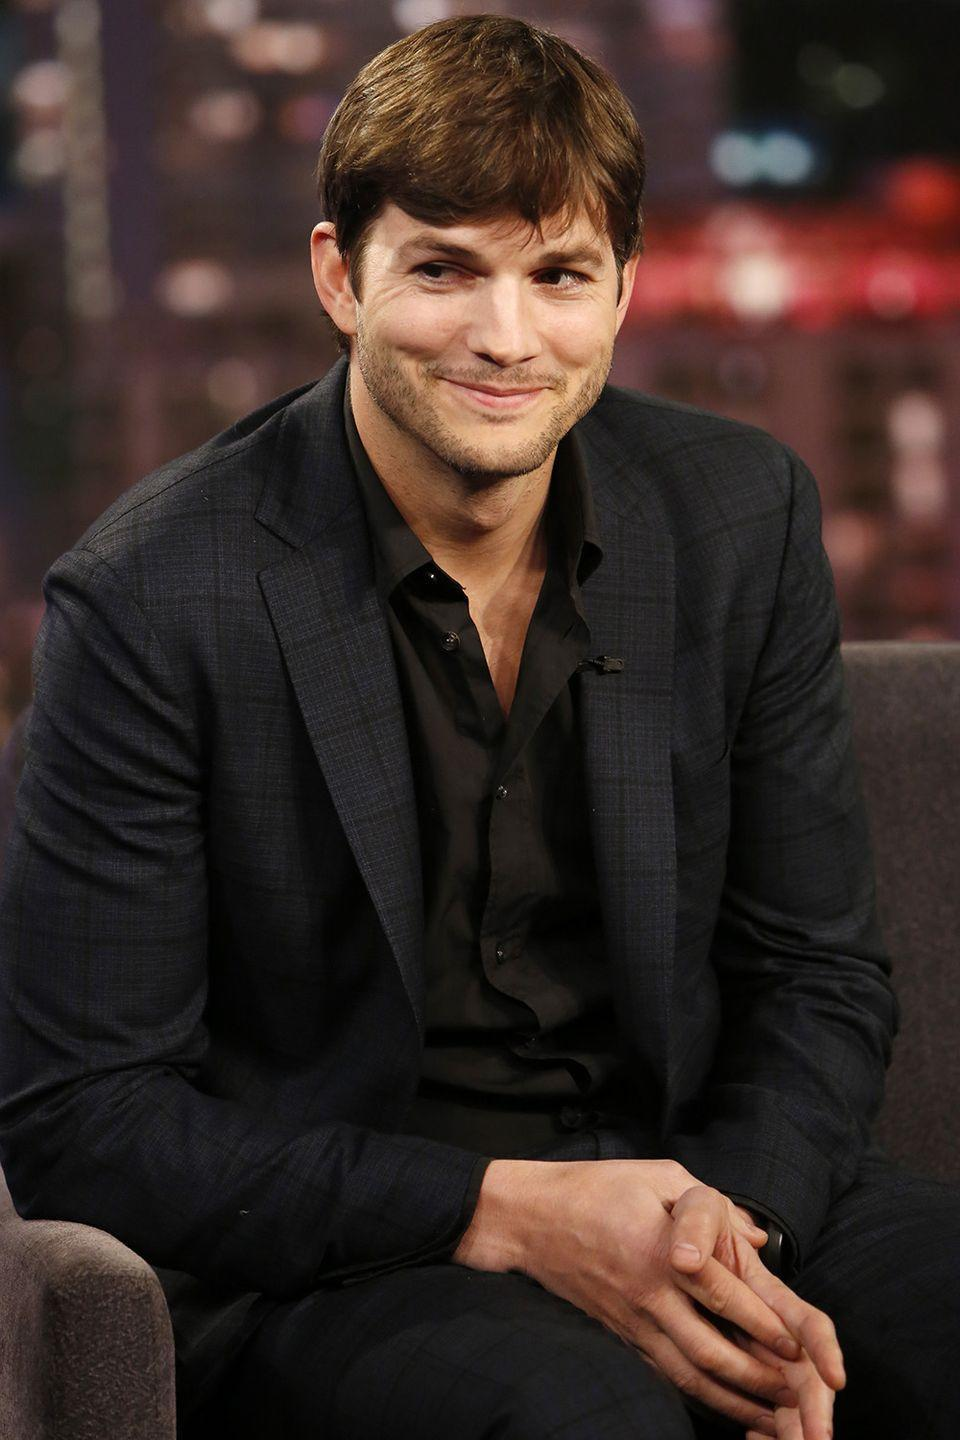 """<p><strong>Born</strong>: Christopher Ashton Kutcher</p><p>Ashton Kutcher revealed his real first name at the 2013 <span class=""""redactor-unlink"""">Teen Choice Awards, where he received the Ultimate Choice Award.</span> The <a href=""""https://www.youtube.com/watch?v=f6-lEGEgIzk"""" rel=""""nofollow noopener"""" target=""""_blank"""" data-ylk=""""slk:actor joked"""" class=""""link rapid-noclick-resp"""">actor joked</a> that it's actually the """"old guy"""" award and he feels like a fraud, <span class=""""redactor-unlink"""">revealing</span>: """"My name is not even actually Ashton."""" The funny guy explained that he decided to go by his middle name when he was first trying to make it in Hollywood at the age of 19.</p>"""